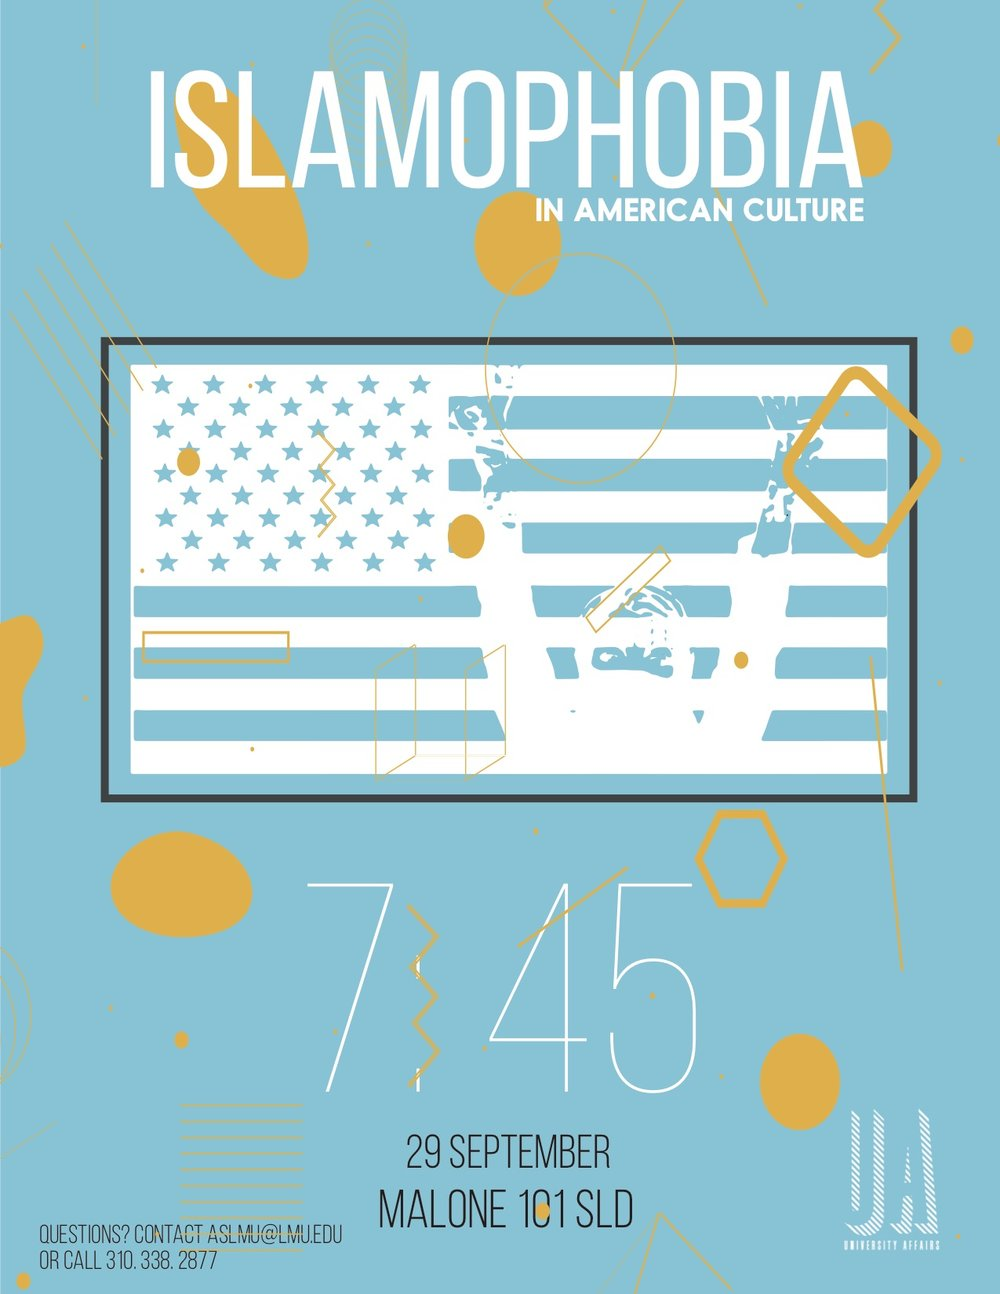 Join ASLMU for a unique opportunity to discuss issues surrounding islamiphobia in the United States. There will be a short video presentation every night on the patio of Regents Terrace starting Tuesday, September 27 from 7-9 pm. Concluding with our big event on September 29! Don't forget to stop by!!